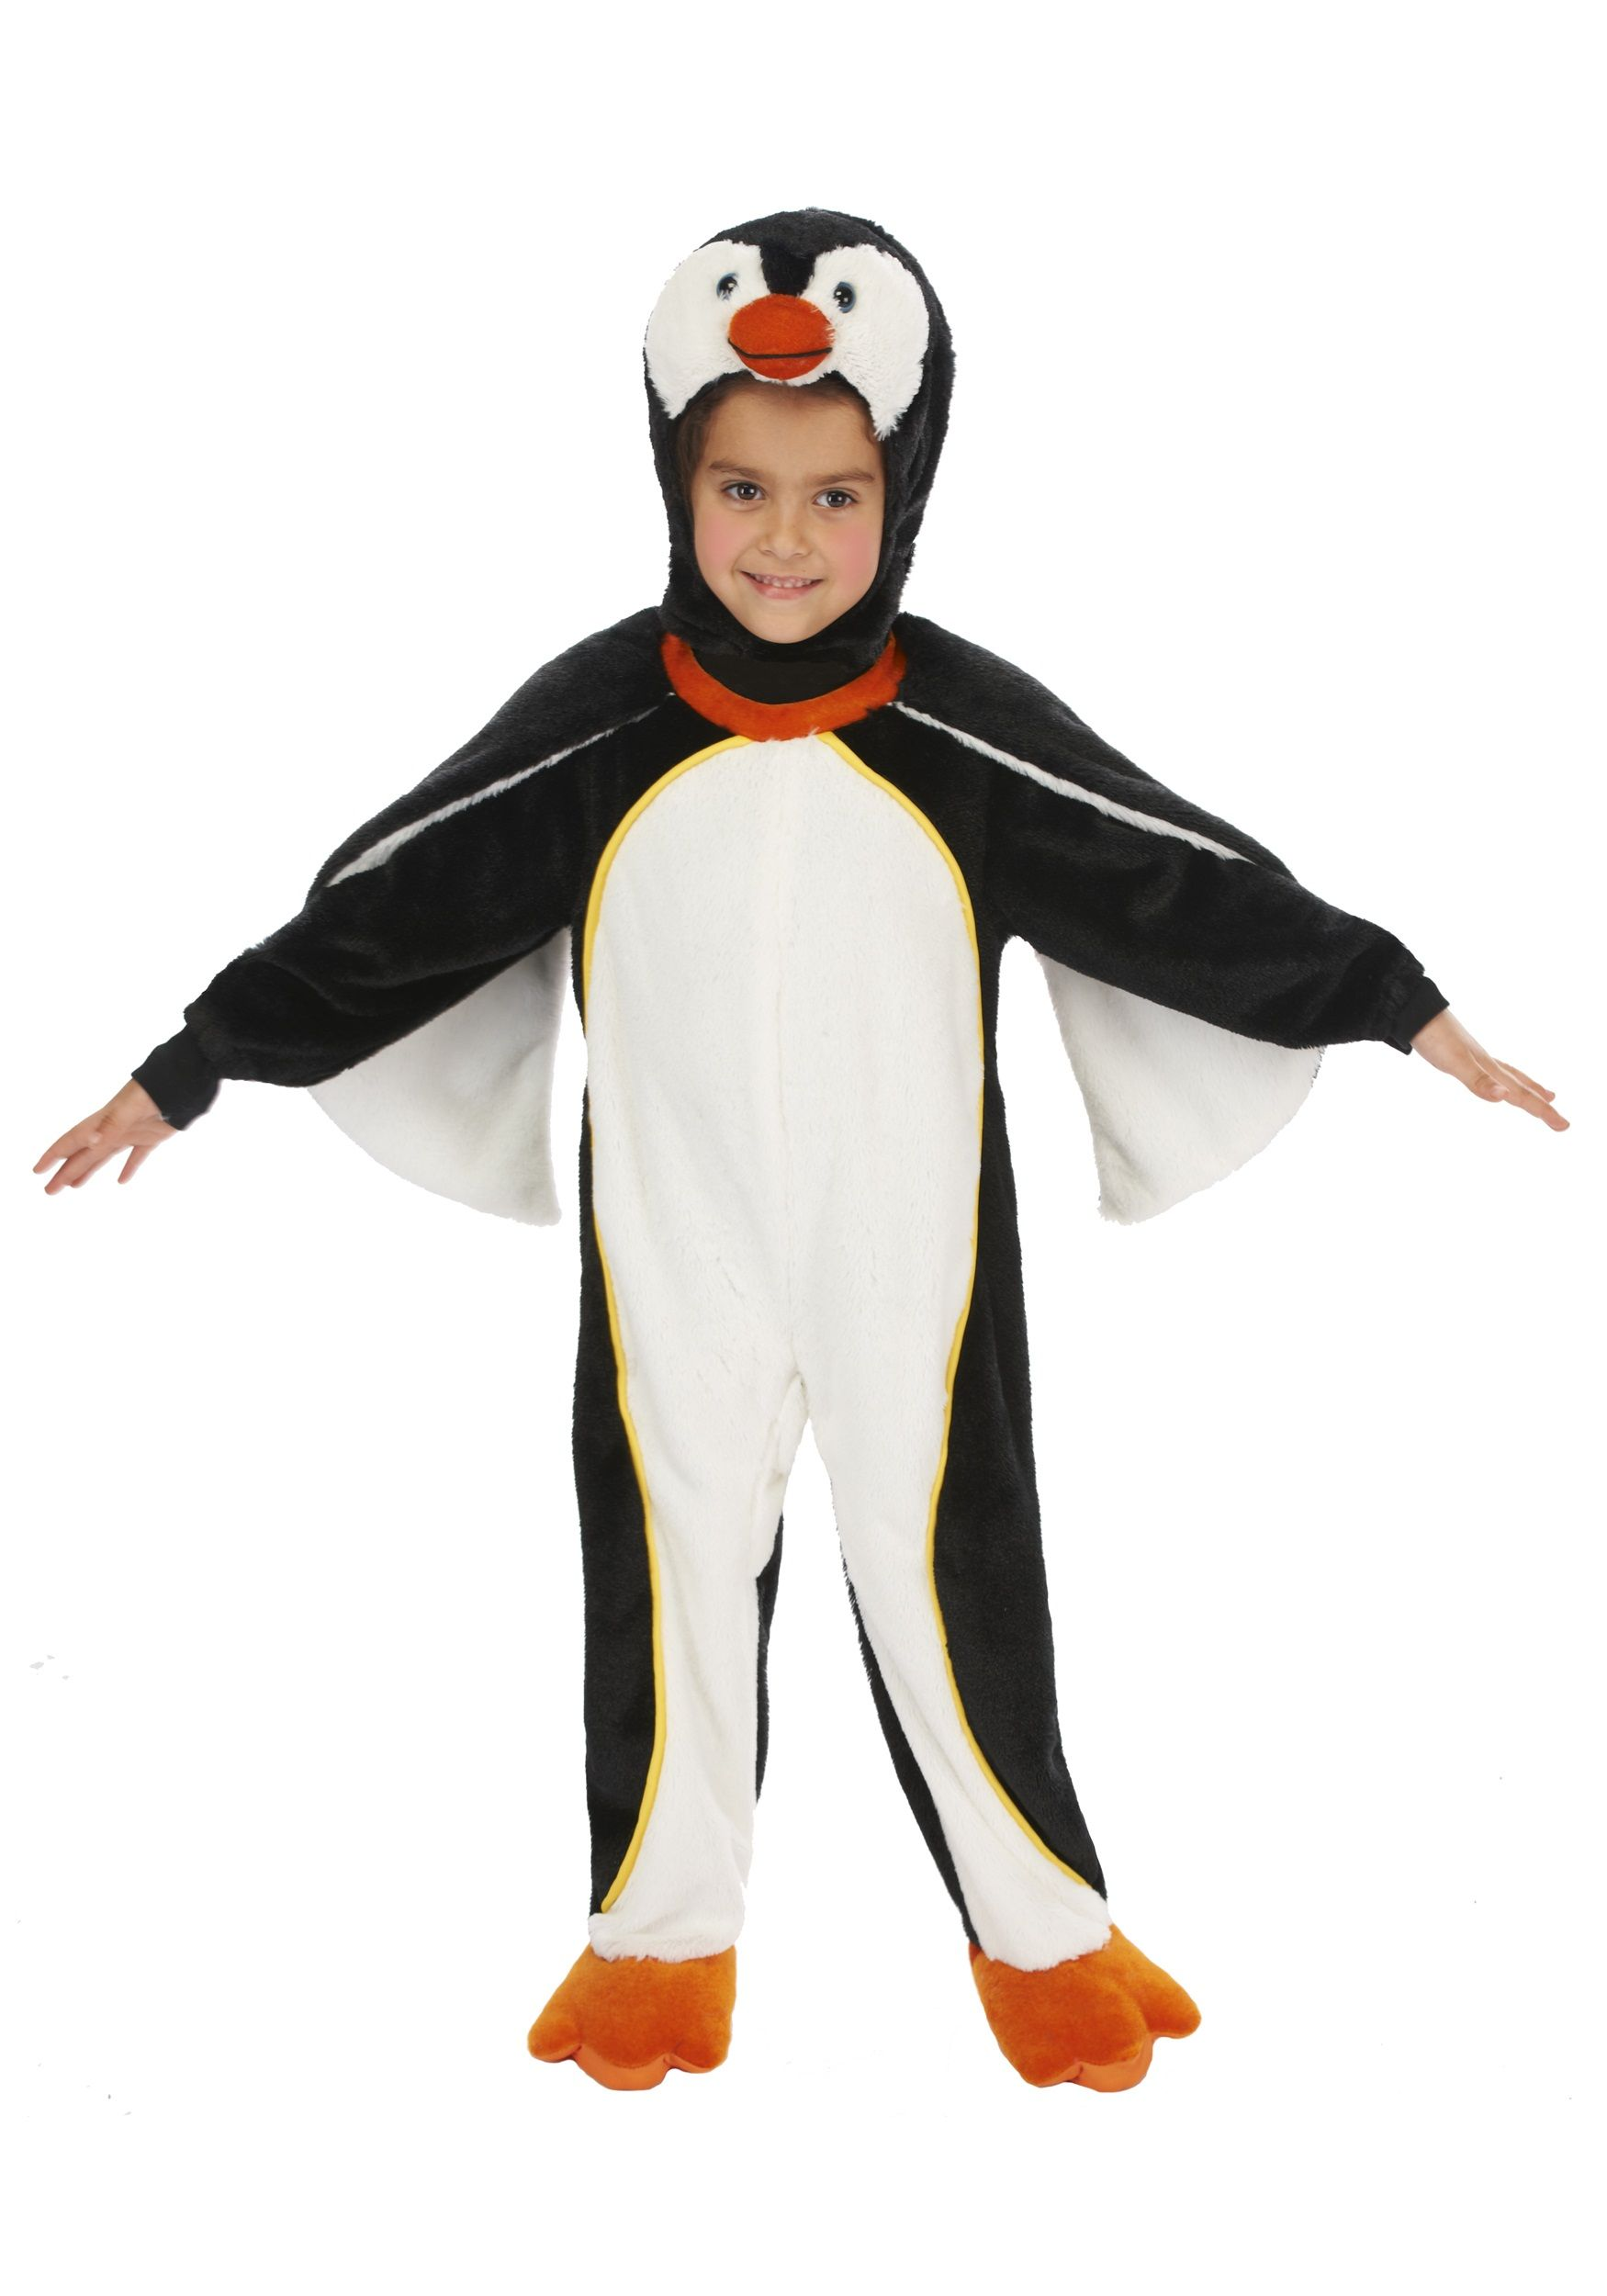 Penguin Toddler Costume  sc 1 st  Pinterest & Penguin Toddler Costume | Lucyu0027s birthday | Pinterest | Toddler ...